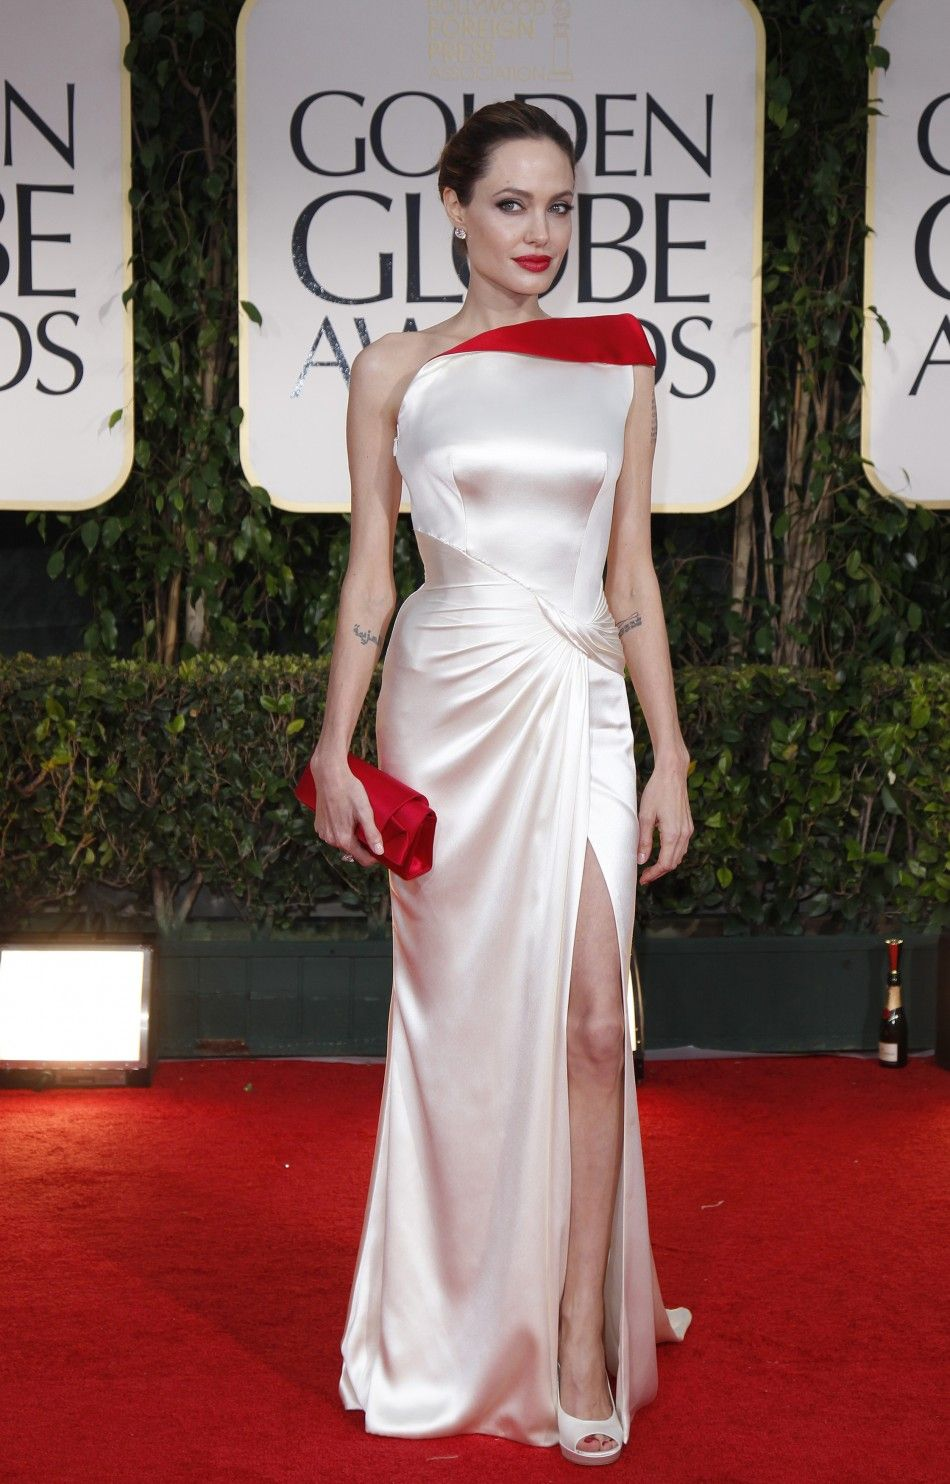 Actress and director Angelina Jolie arrives at the 69th annual Golden Globe Awards in Beverly Hills, California January 15, 2012.